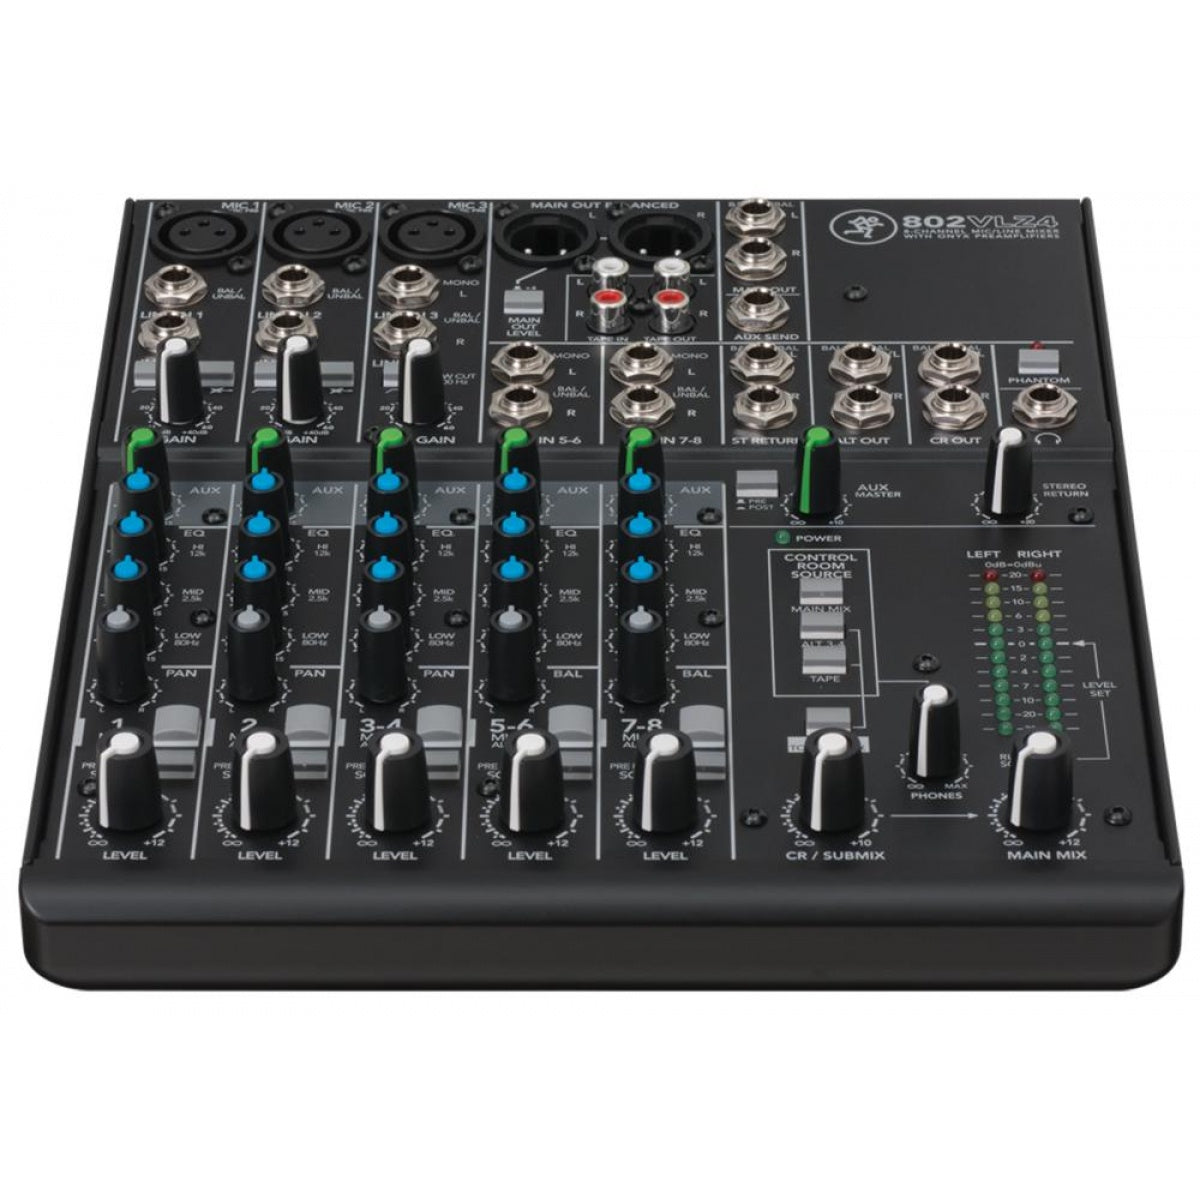 Mackie VLZ4 Series 8-Ch Ultra Compact Mixer